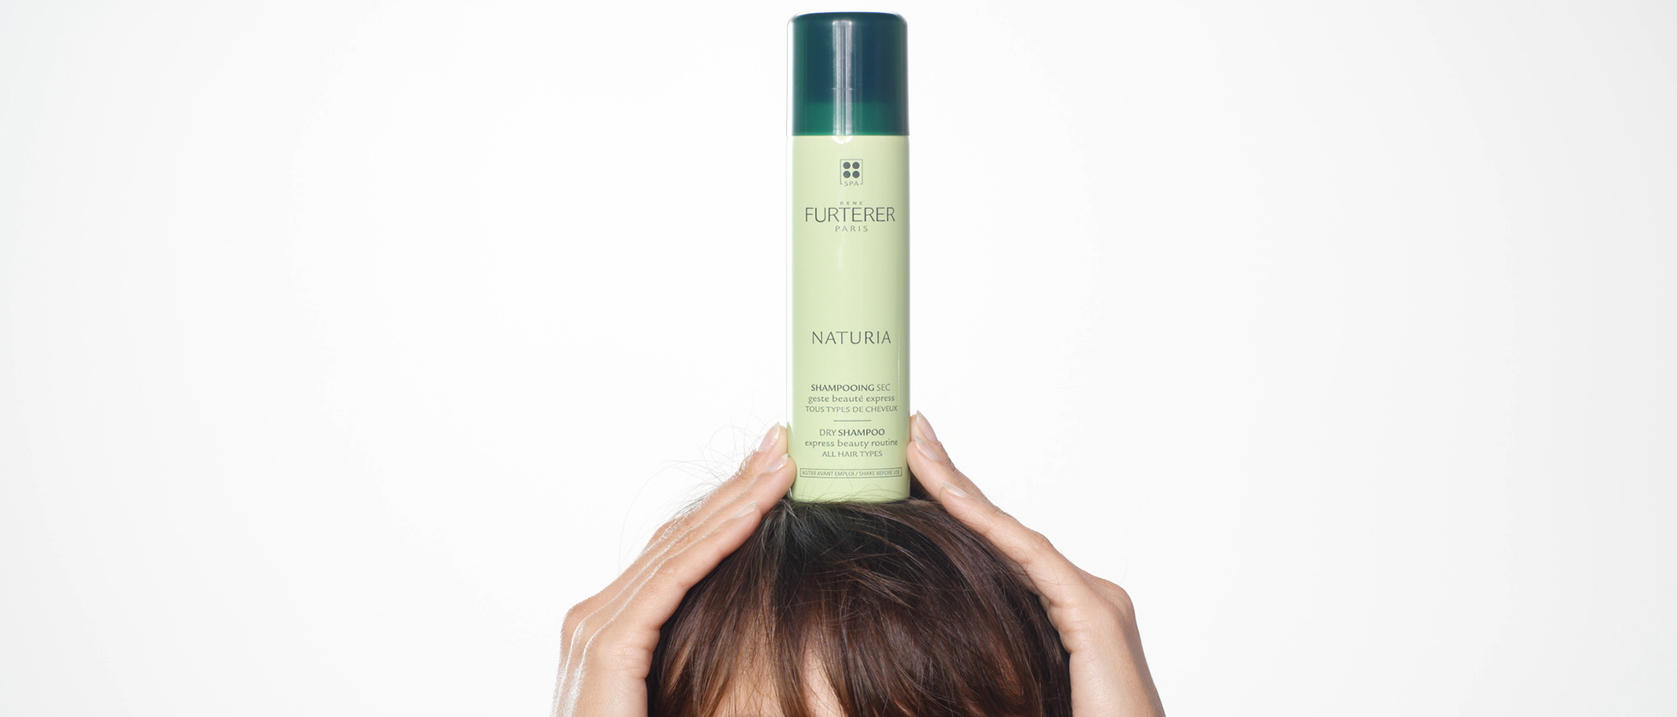 NATURIA Dry shampoo application video  | René Furterer